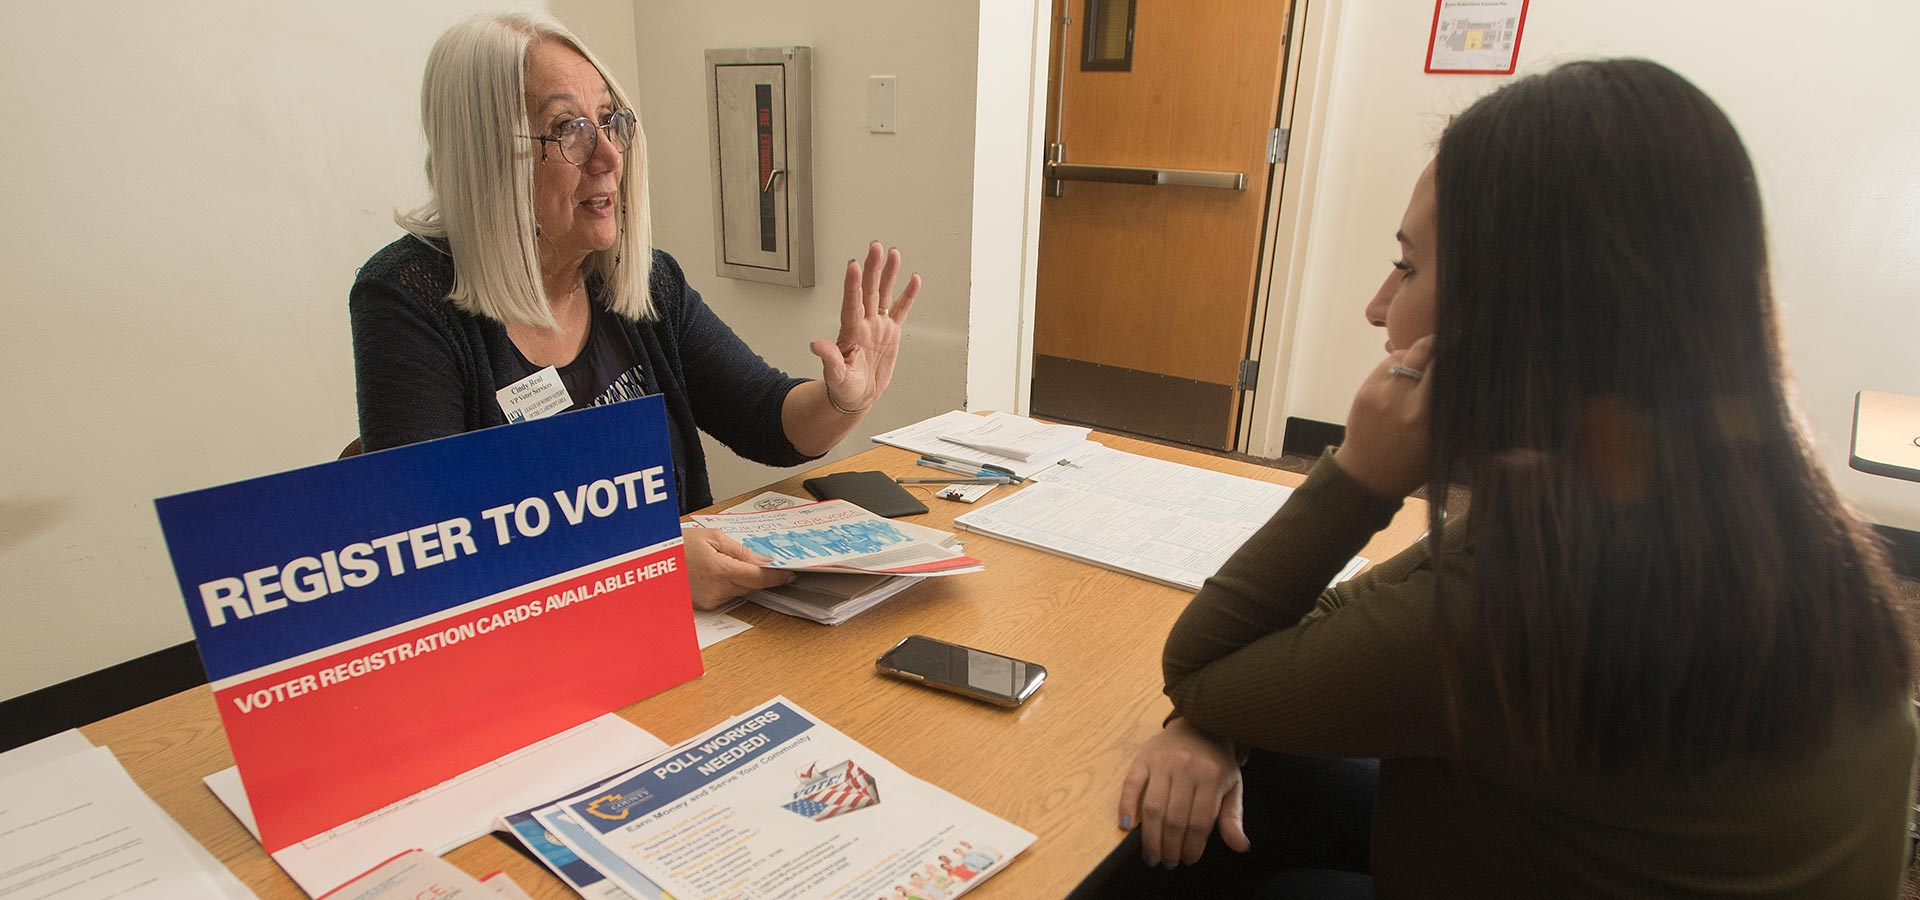 Cindy Rheaul  of the League of Women Voters speaks to a student